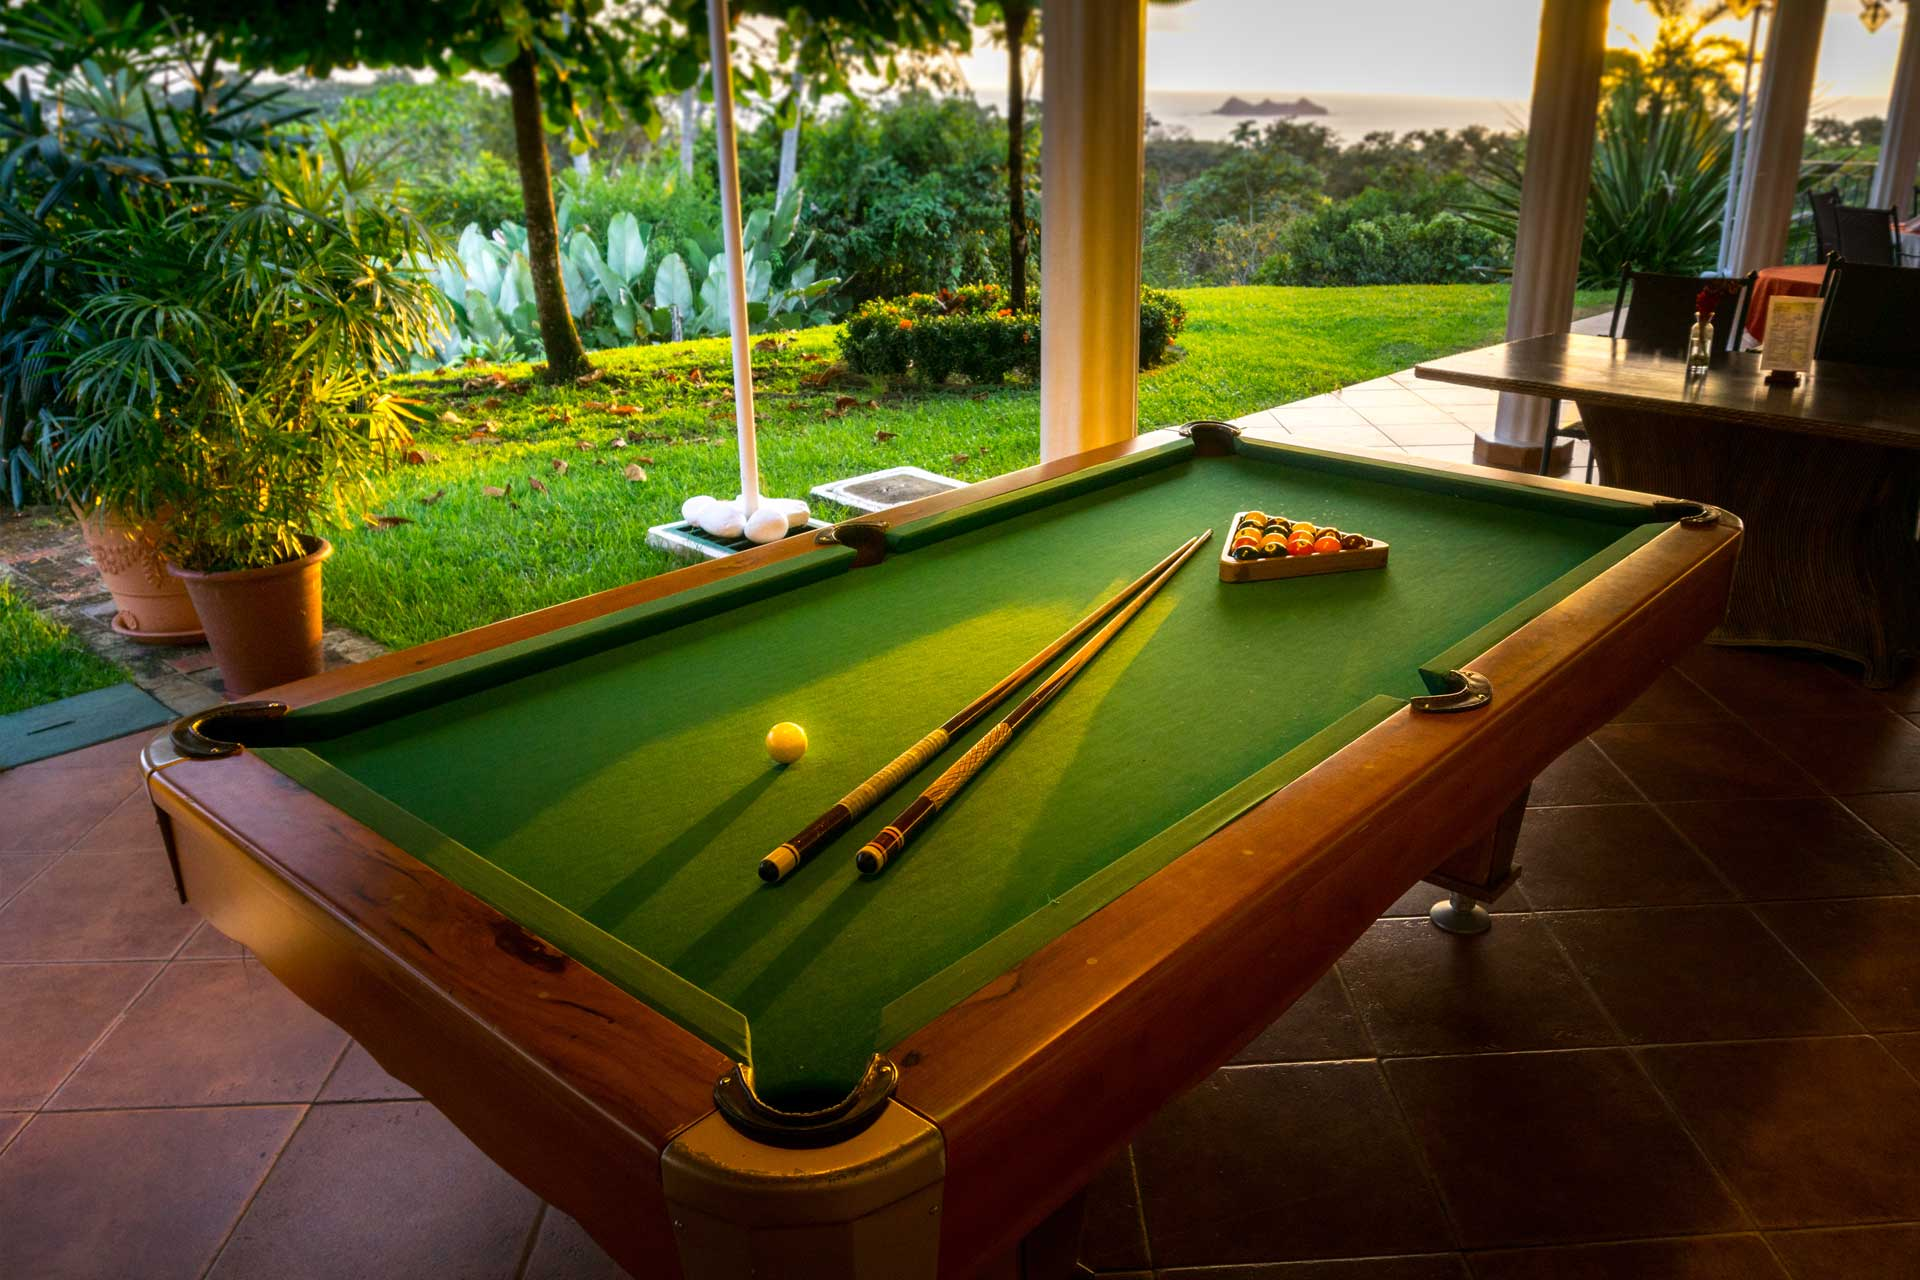 CB pool table